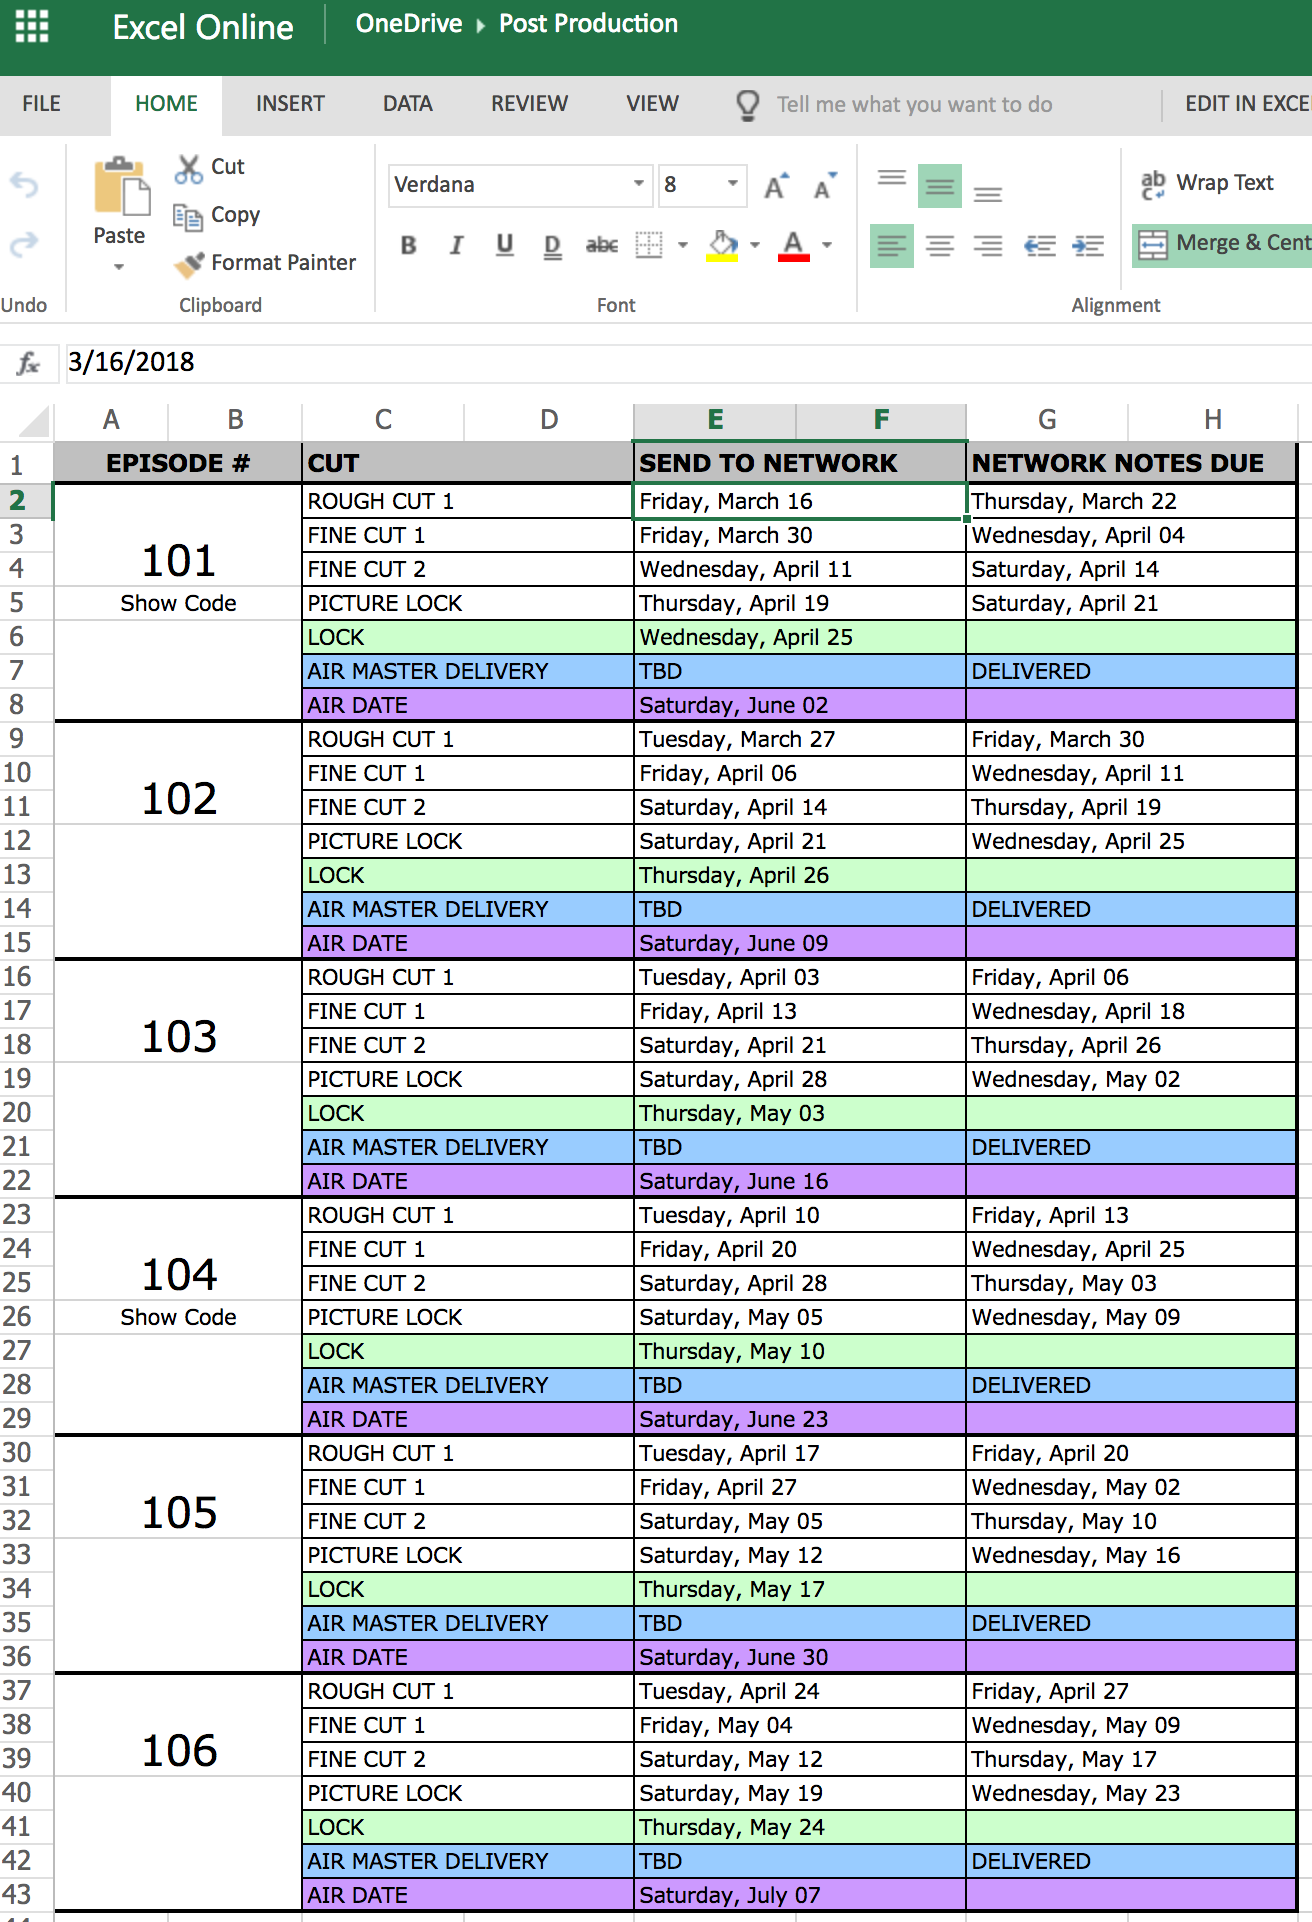 Post Schedule Hot Sheet Sample xlsx